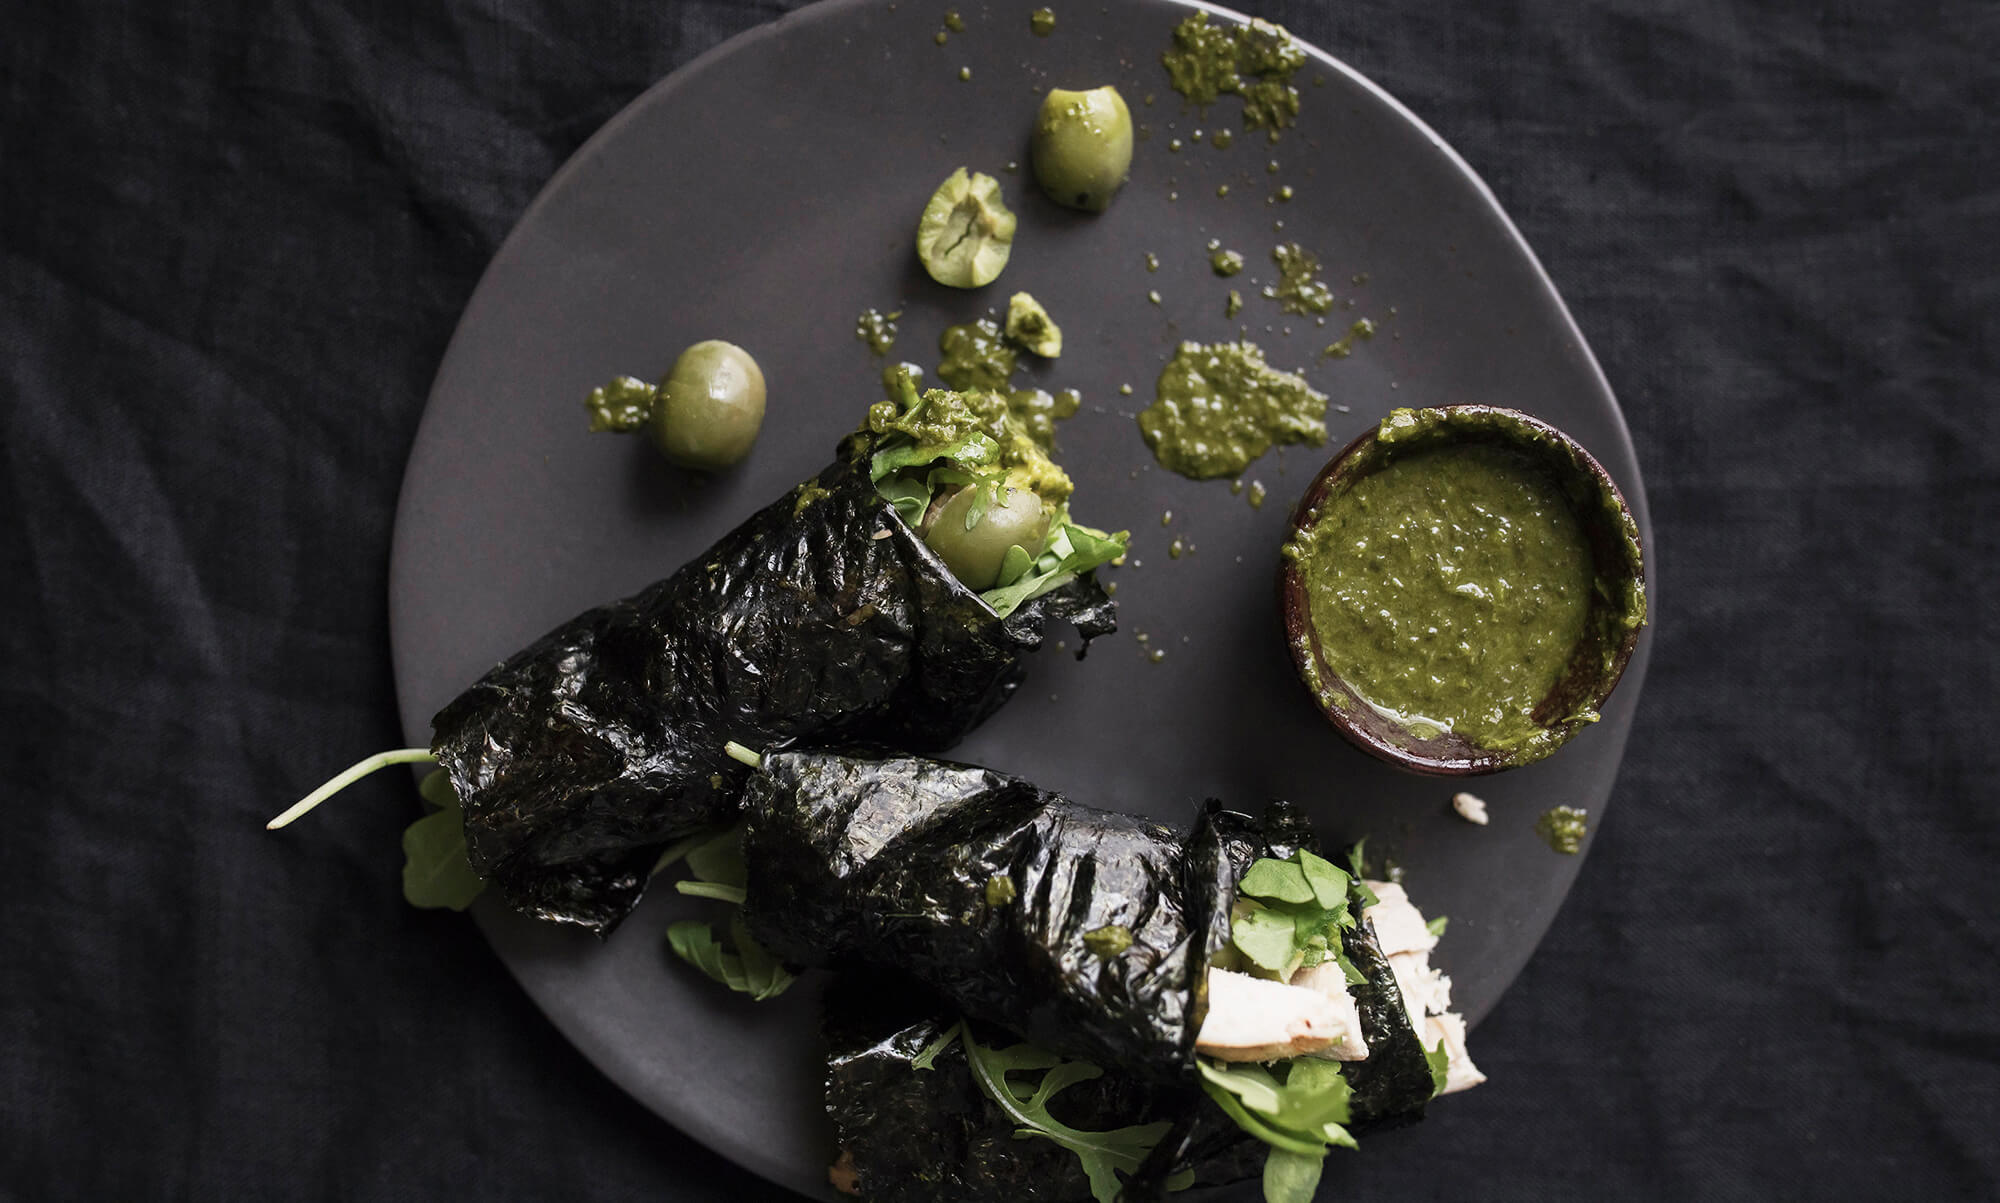 Plant Paradox Recipe: Avocado Seaweed Wrap with Cilantro Dipping Sauce